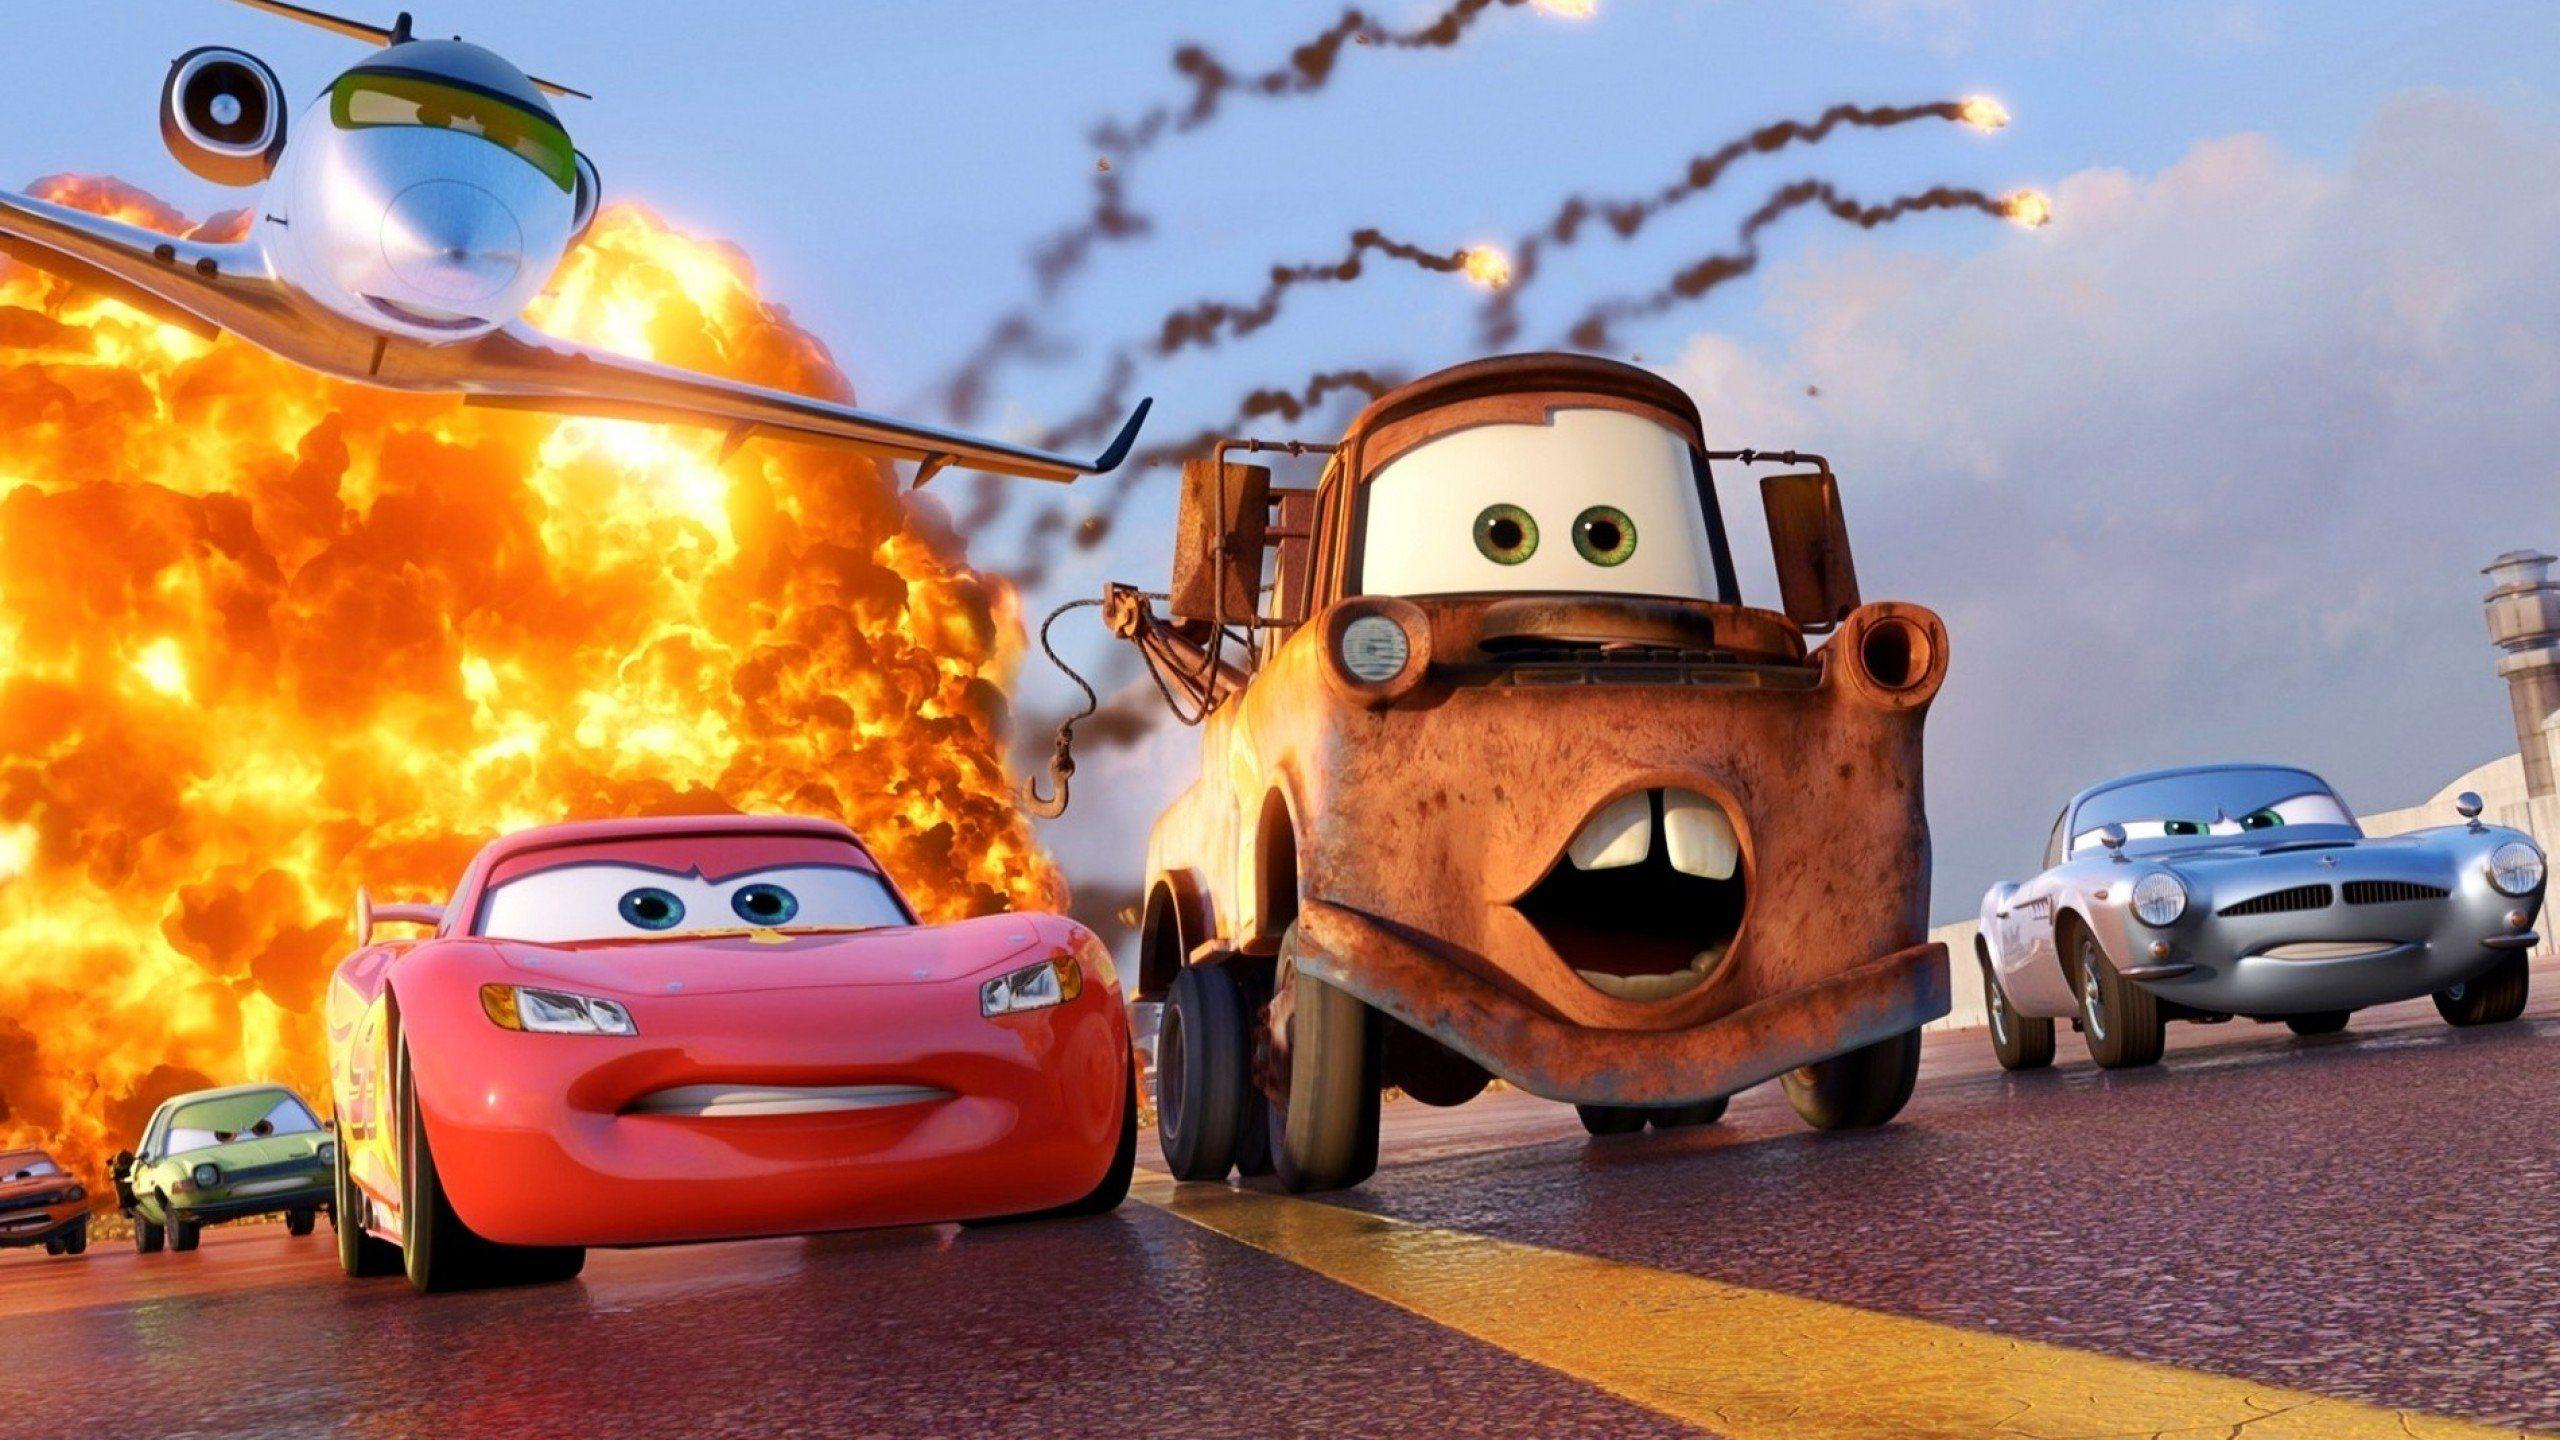 Disney Cars Wallpapers HD